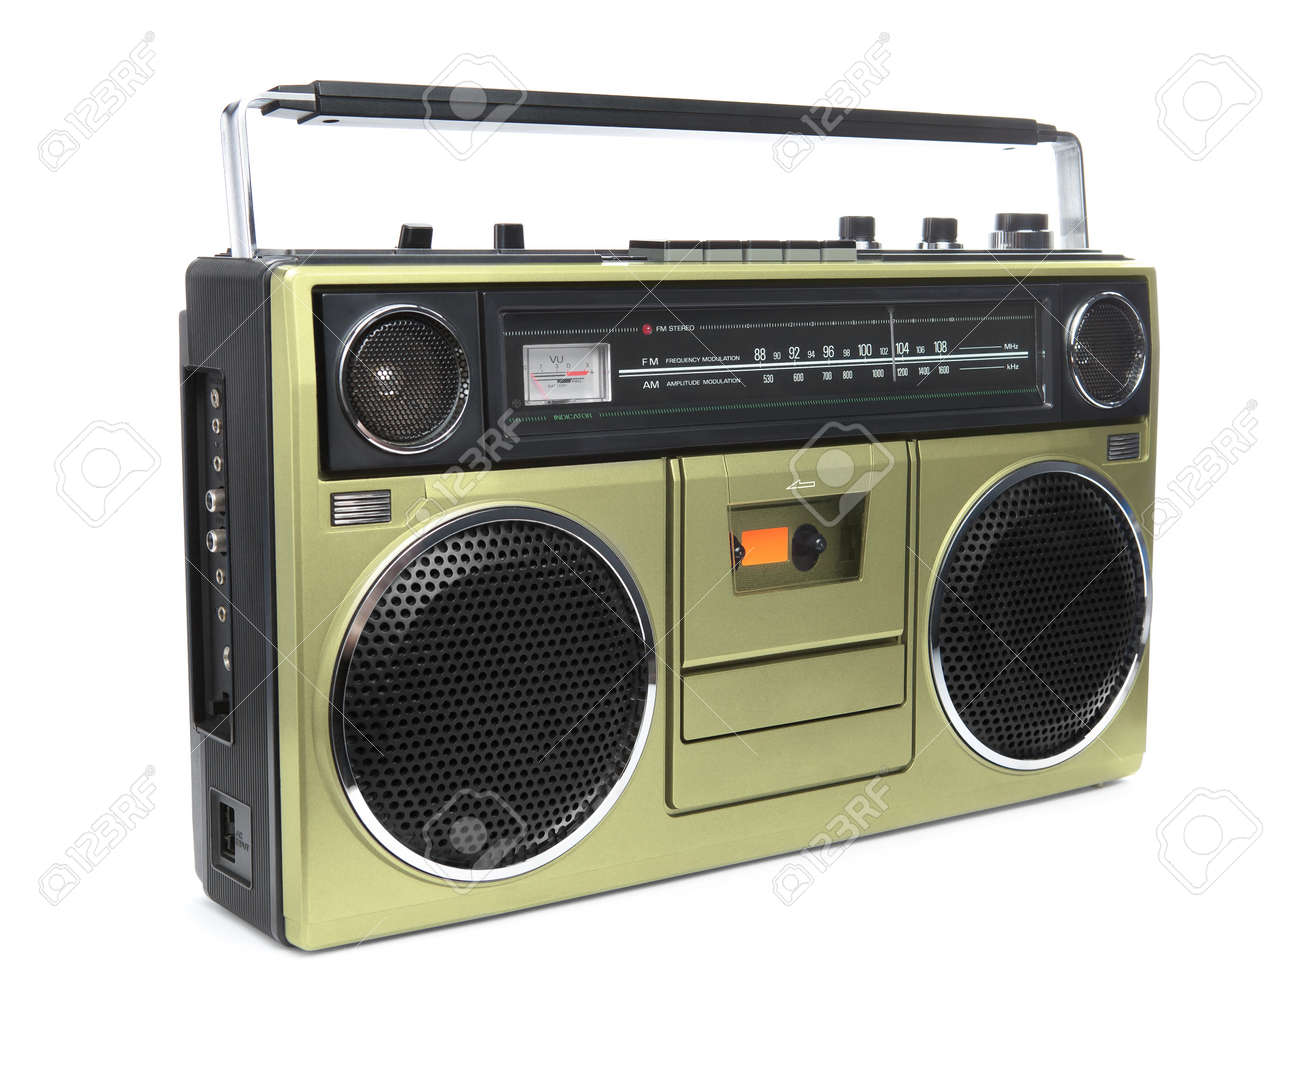 A stylish gold boombox radio from the 1970's isolated on white. Stock Photo - 17308964